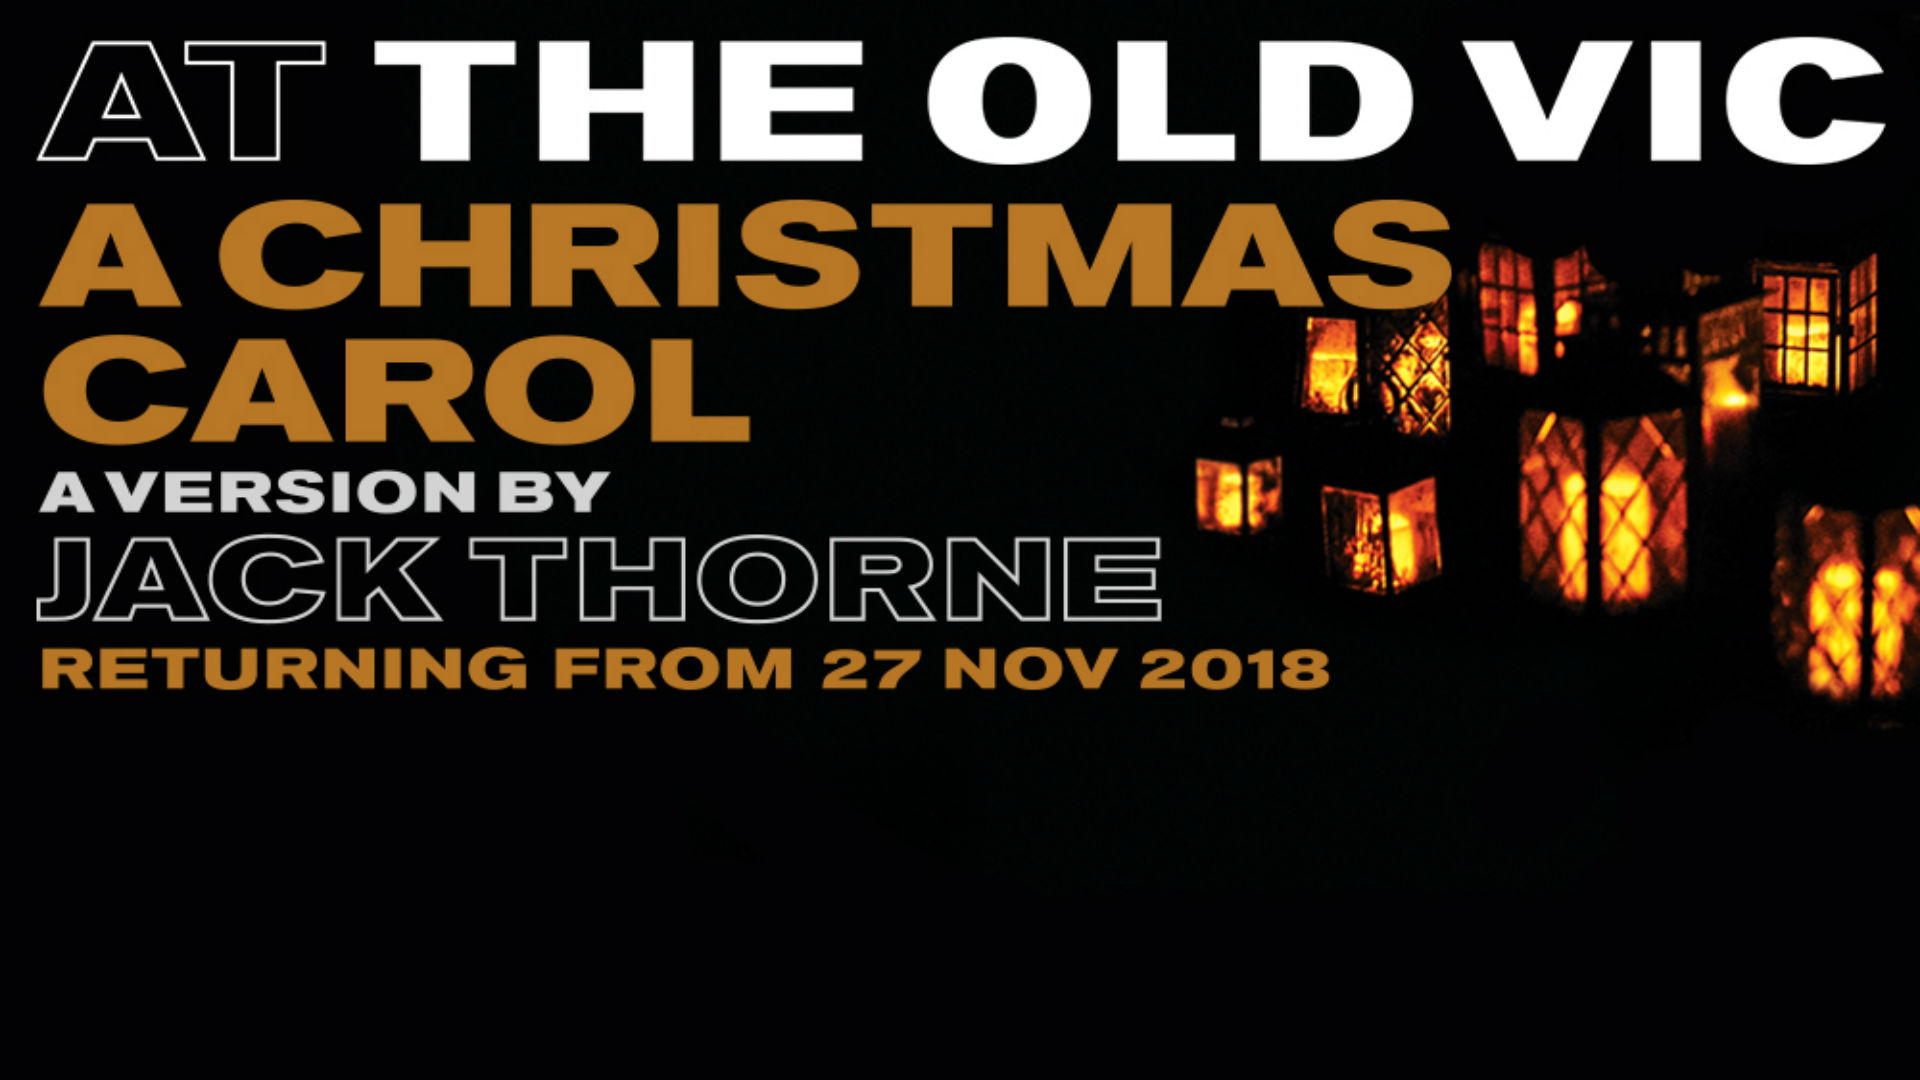 Return of A Christmas Carol at the Old Vic - a version by Jack Thorne